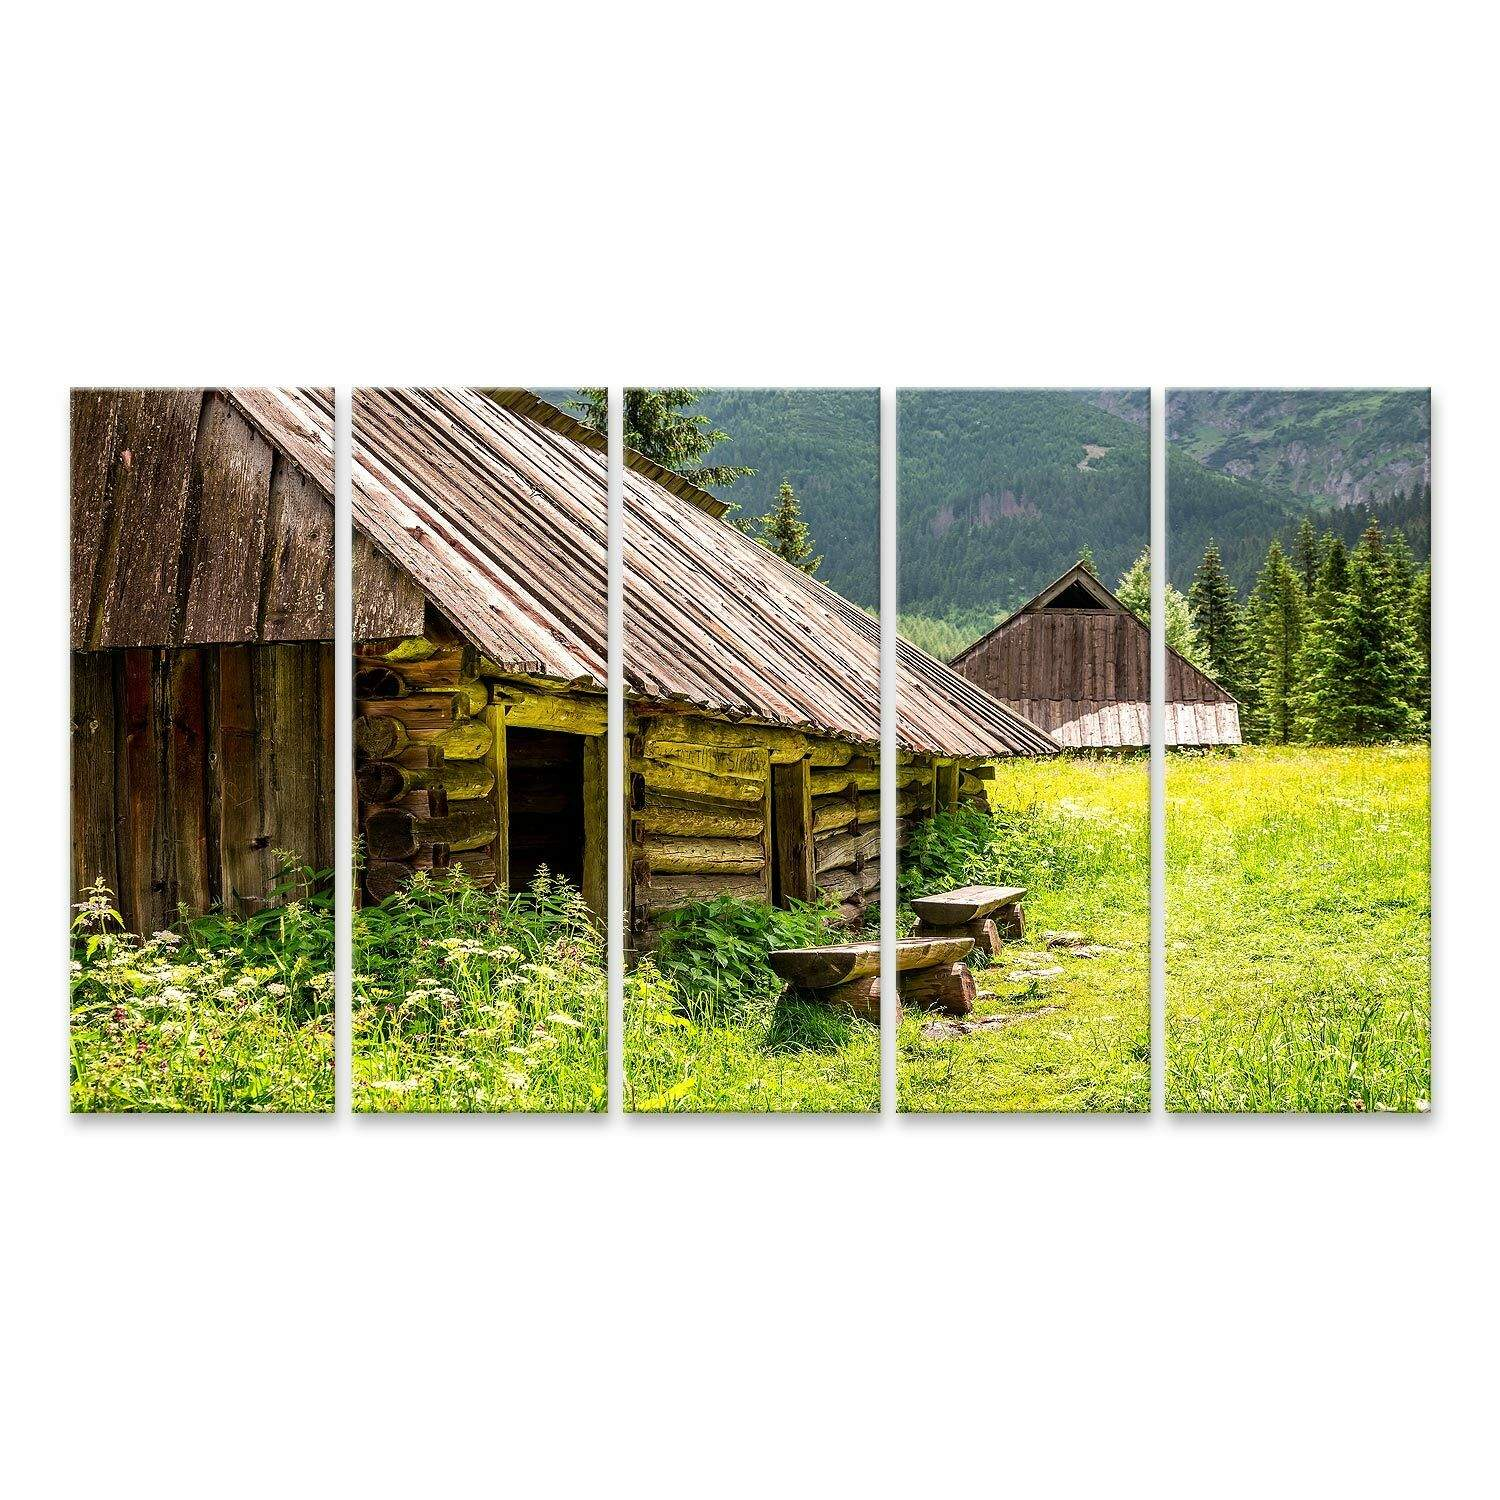 haus aus holz page=34